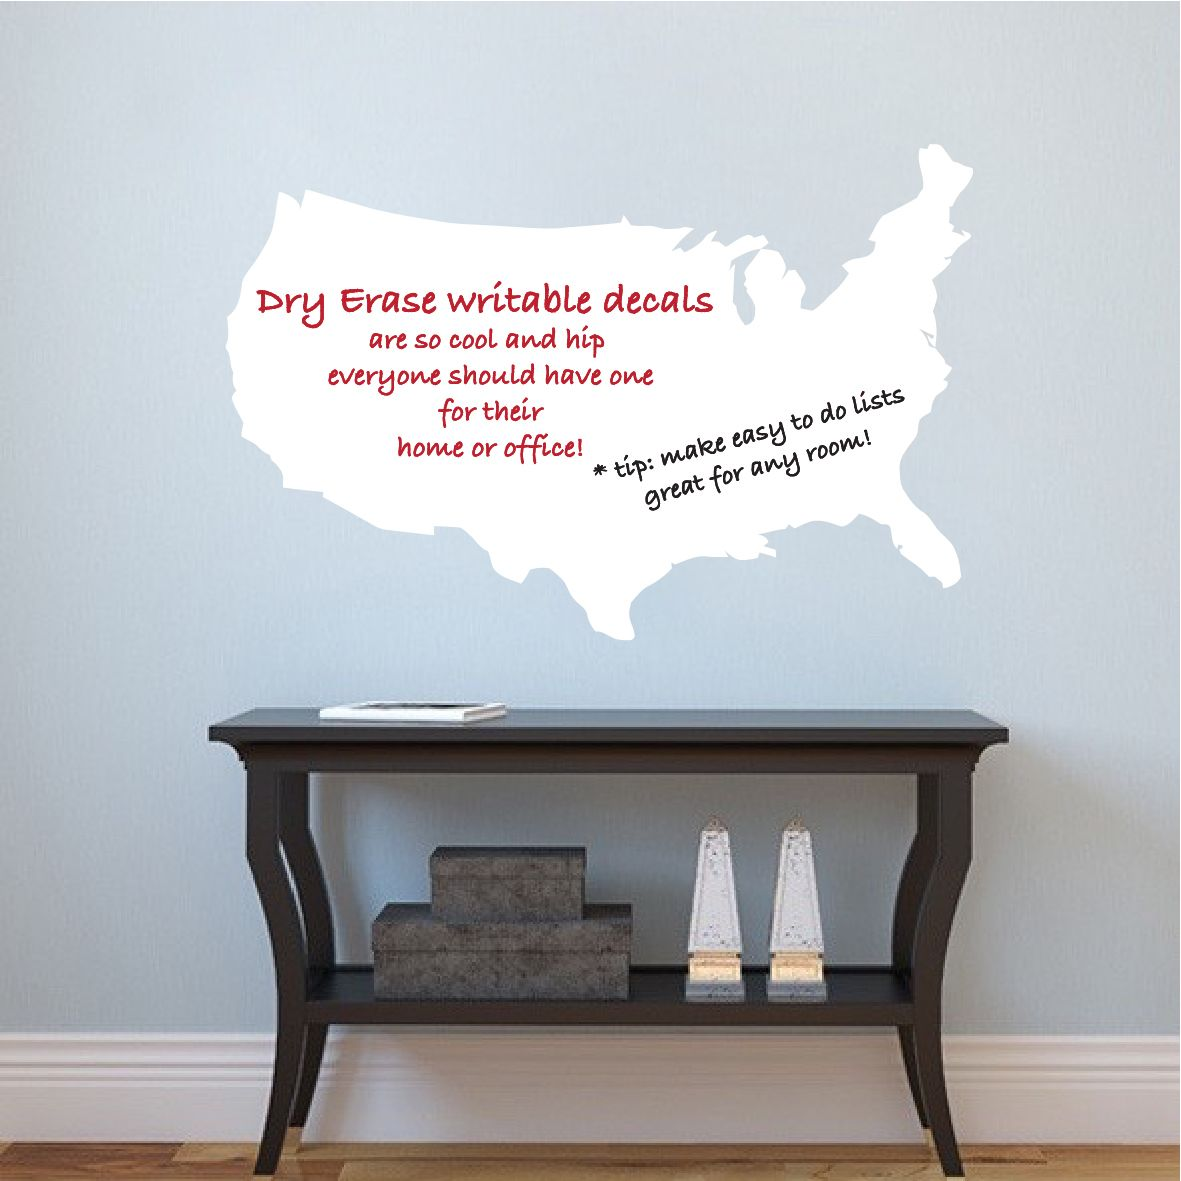 United States Map Dry Erase Wall Decal Dry Erase Wall Decals - Dry-erase-us-wall-map